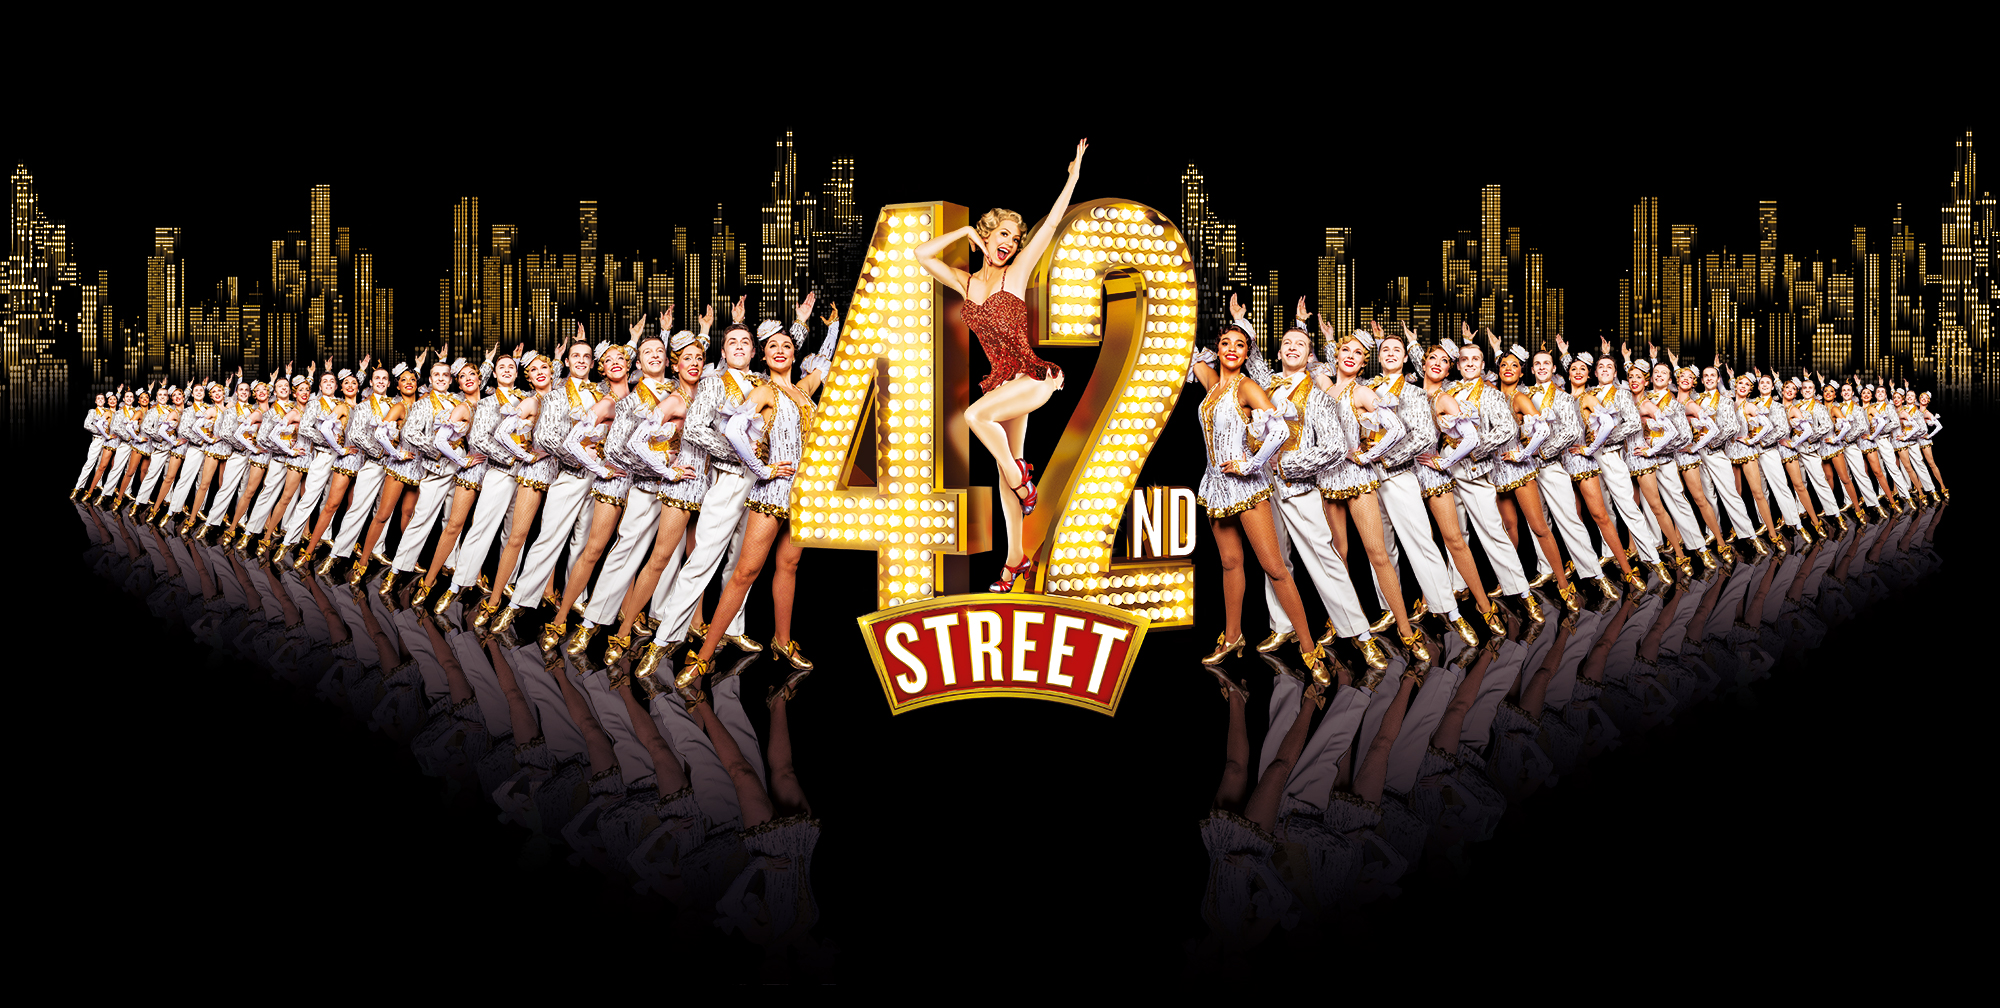 Image 1 of the 42nd Street The Musical gallery